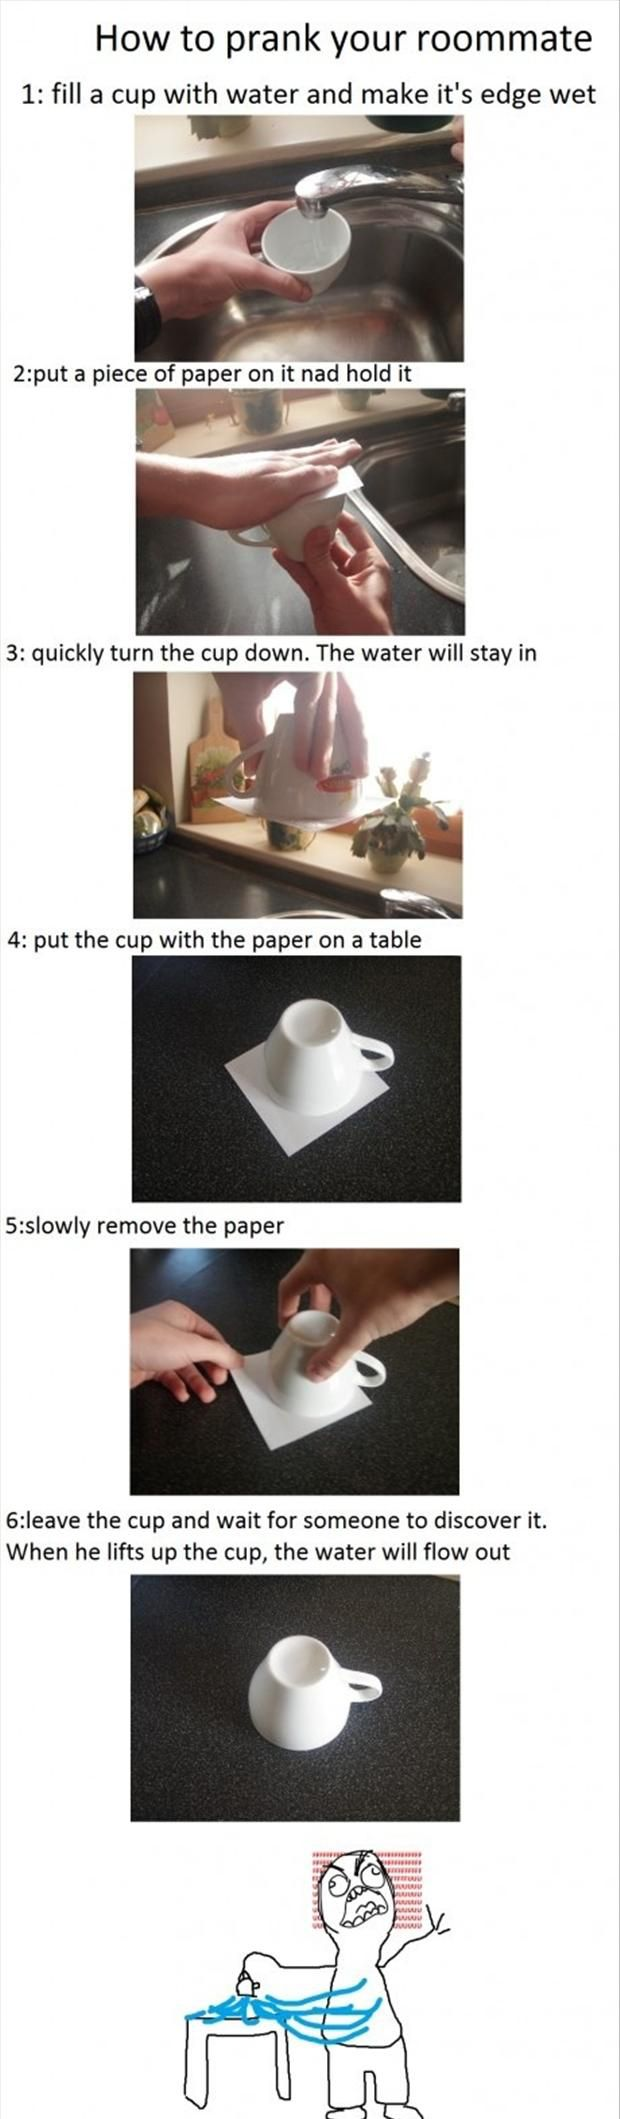 not sure if i could do this to my roommate but to the girls kitchen sure the funny college pranks thats awesome ive been needing an idea for a